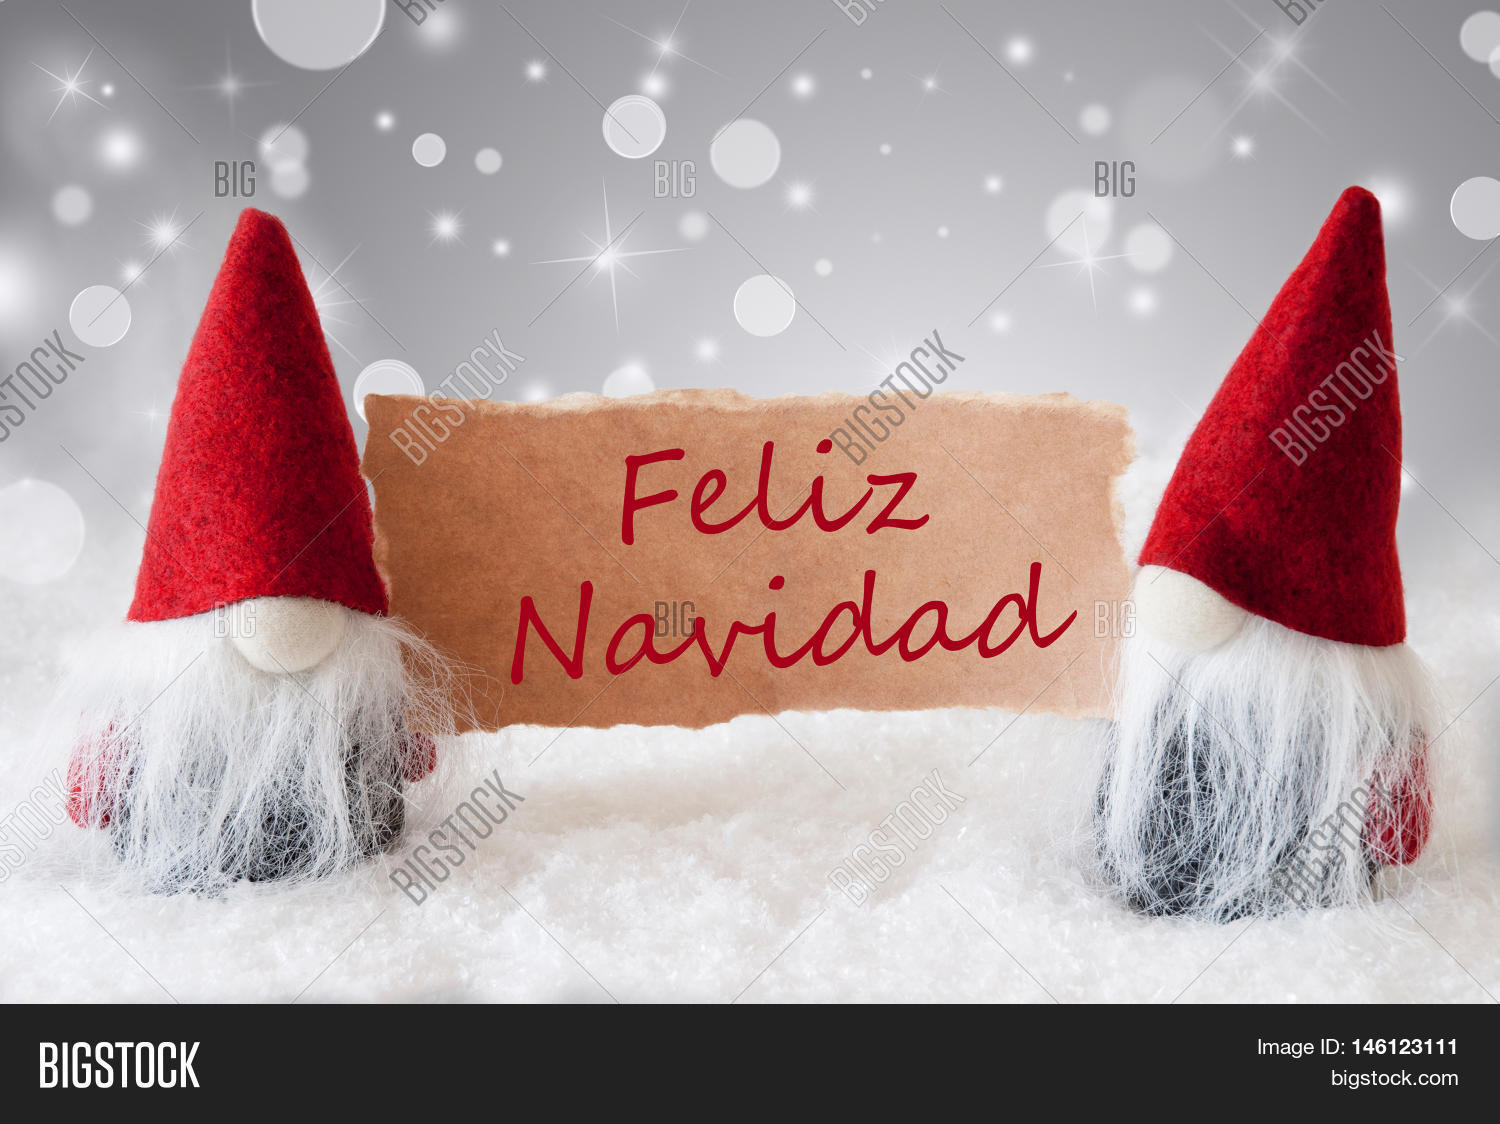 Christmas Wishes In Spanish.Christmas Greeting Image Photo Free Trial Bigstock